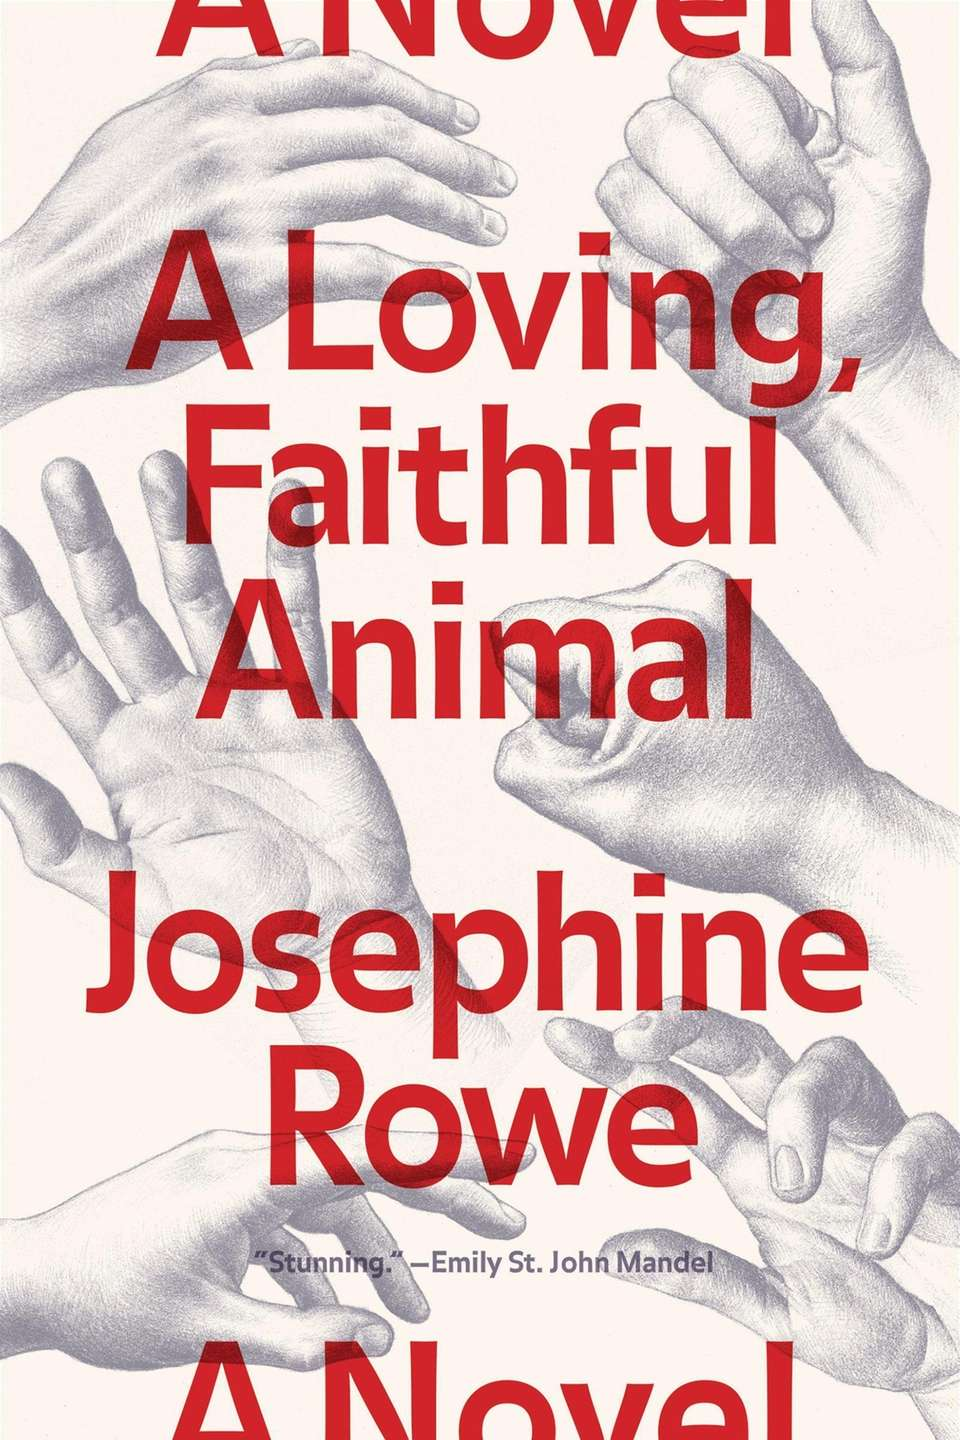 A LOVING, FAITHFUL ANIMAL, by Josephine Rowe. In